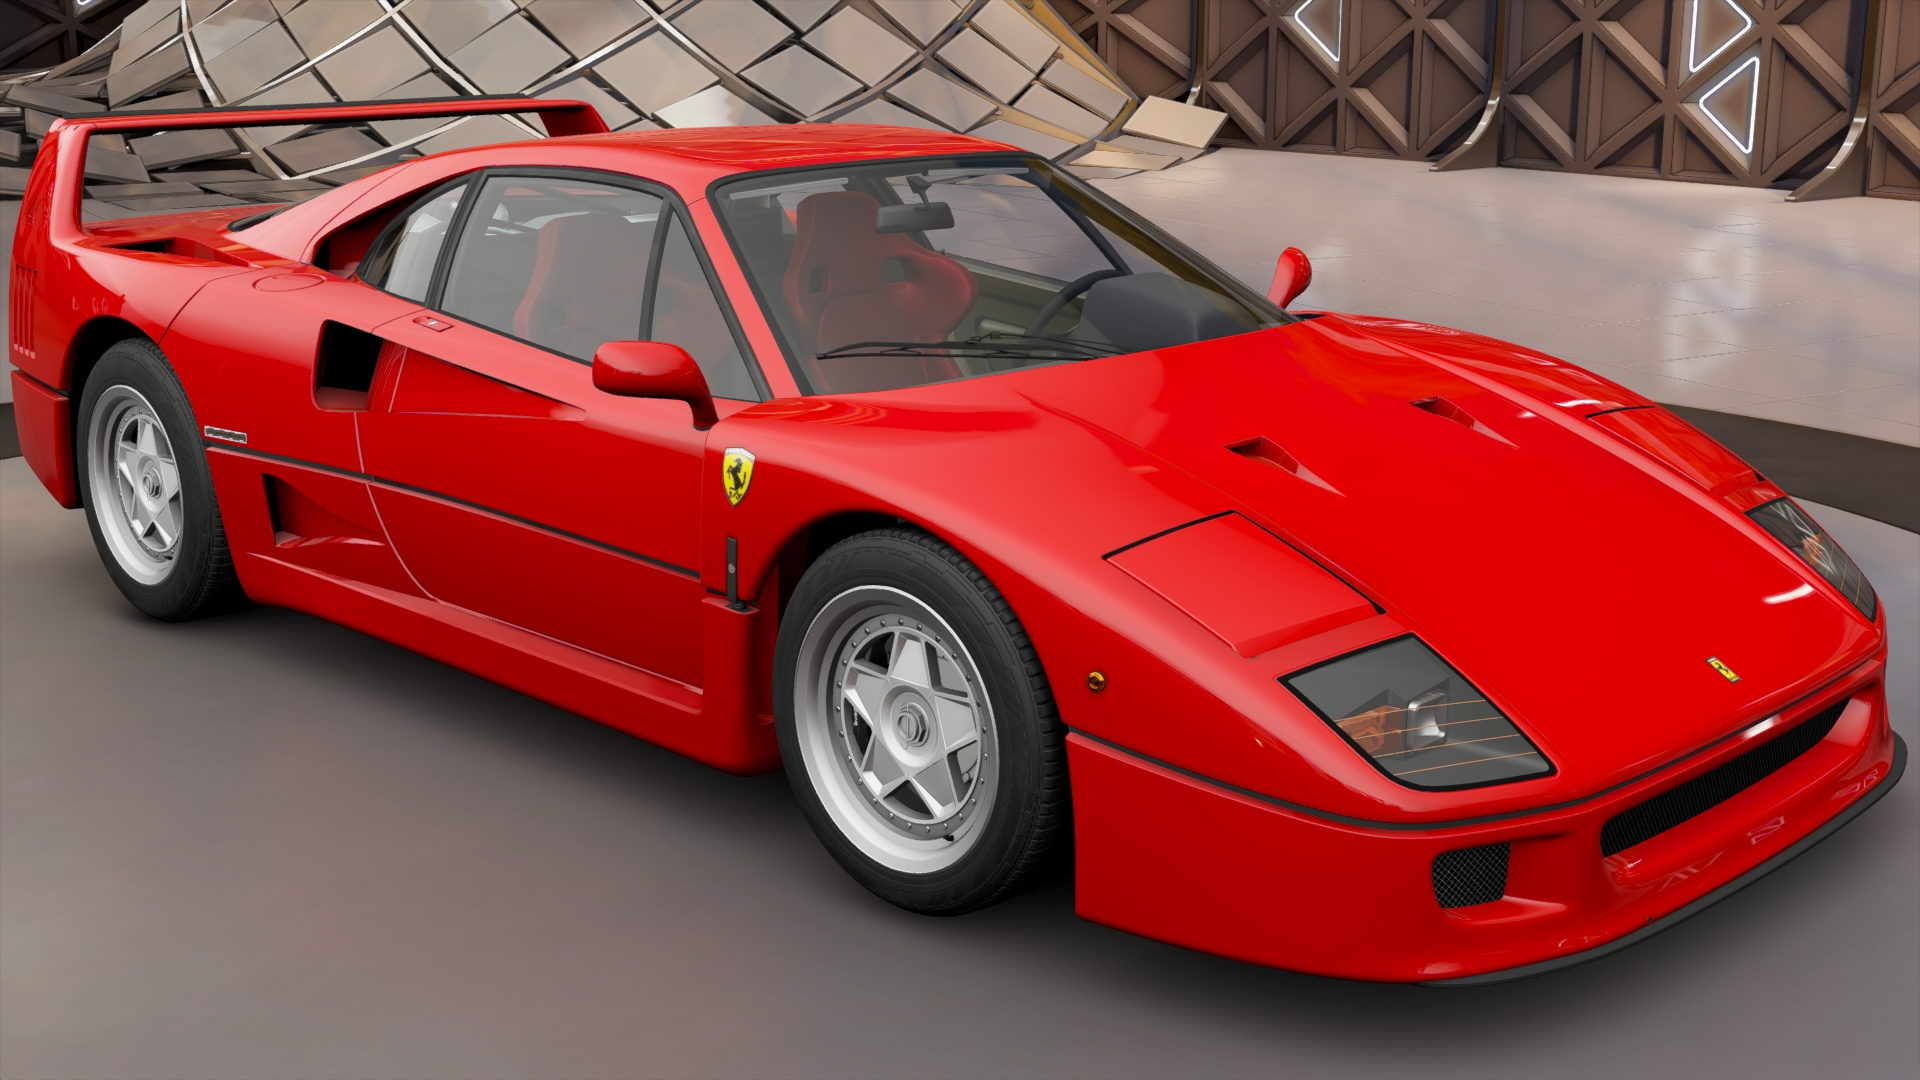 Ferrari F40 Forza Motorsport Wiki Fandom Powered By Wikia